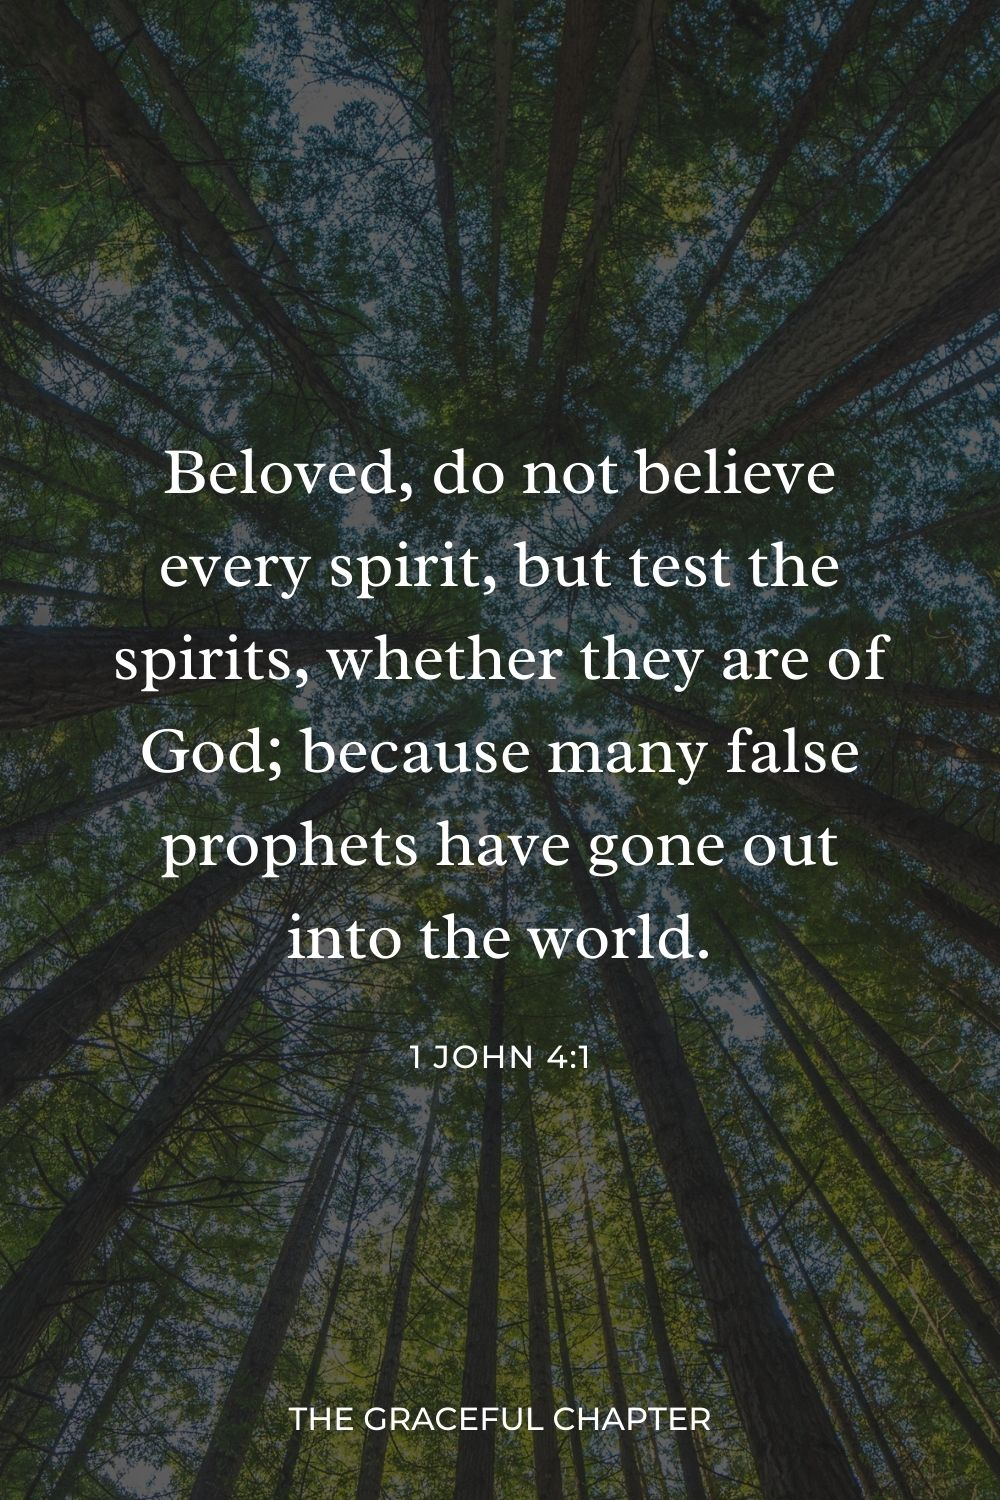 Beloved, do not believe every spirit, but test the spirits, whether they are of God; because many false prophets have gone out into the world. 1 John 4:1